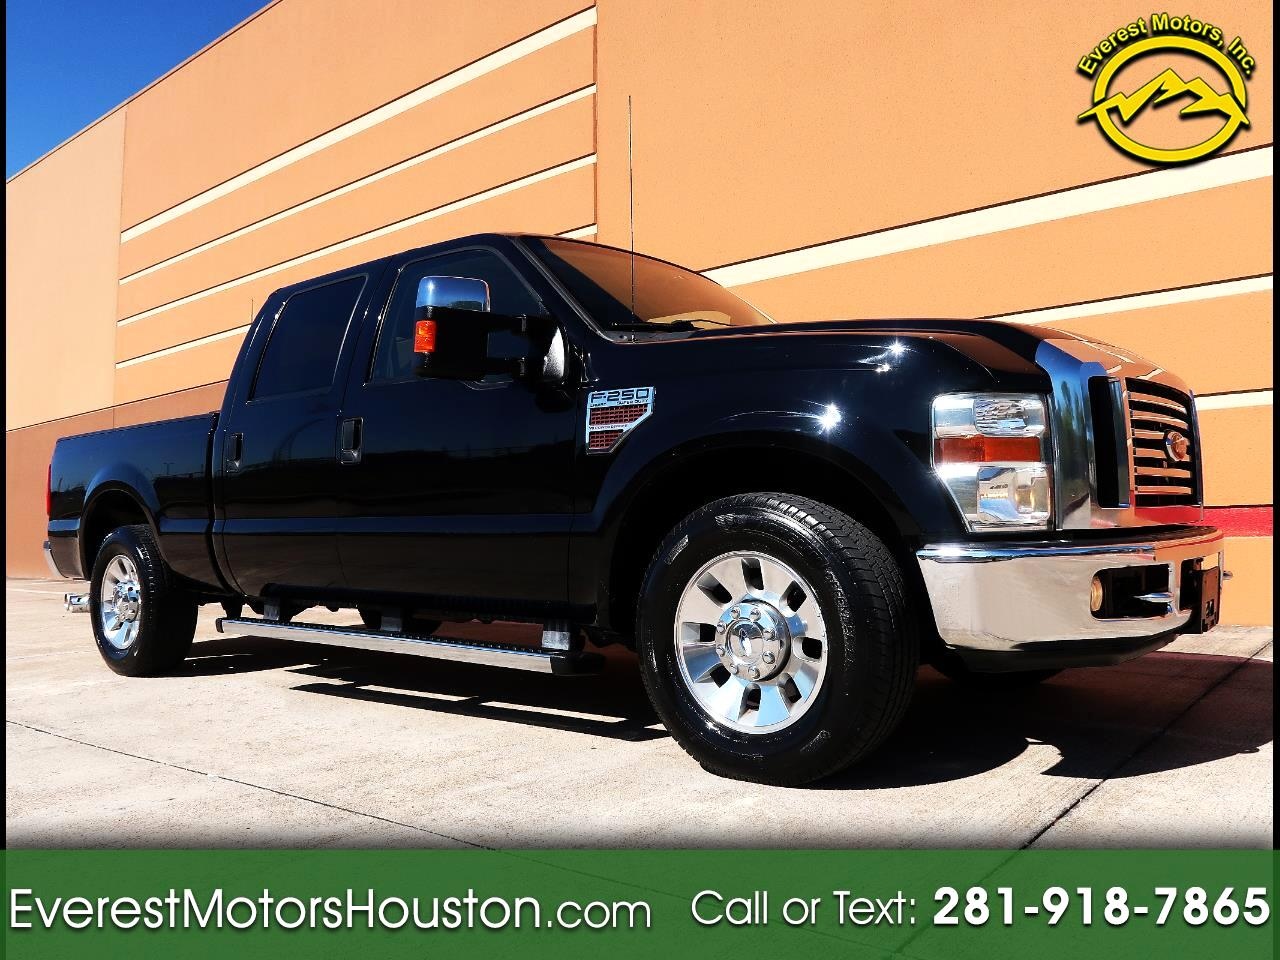 Used Cars For Sale Houston Tx 77063 Everest Motors Inc 2004 Ford F 250 Lariat Texas 2009 Super Duty Srw 2wd Crew Cab 156